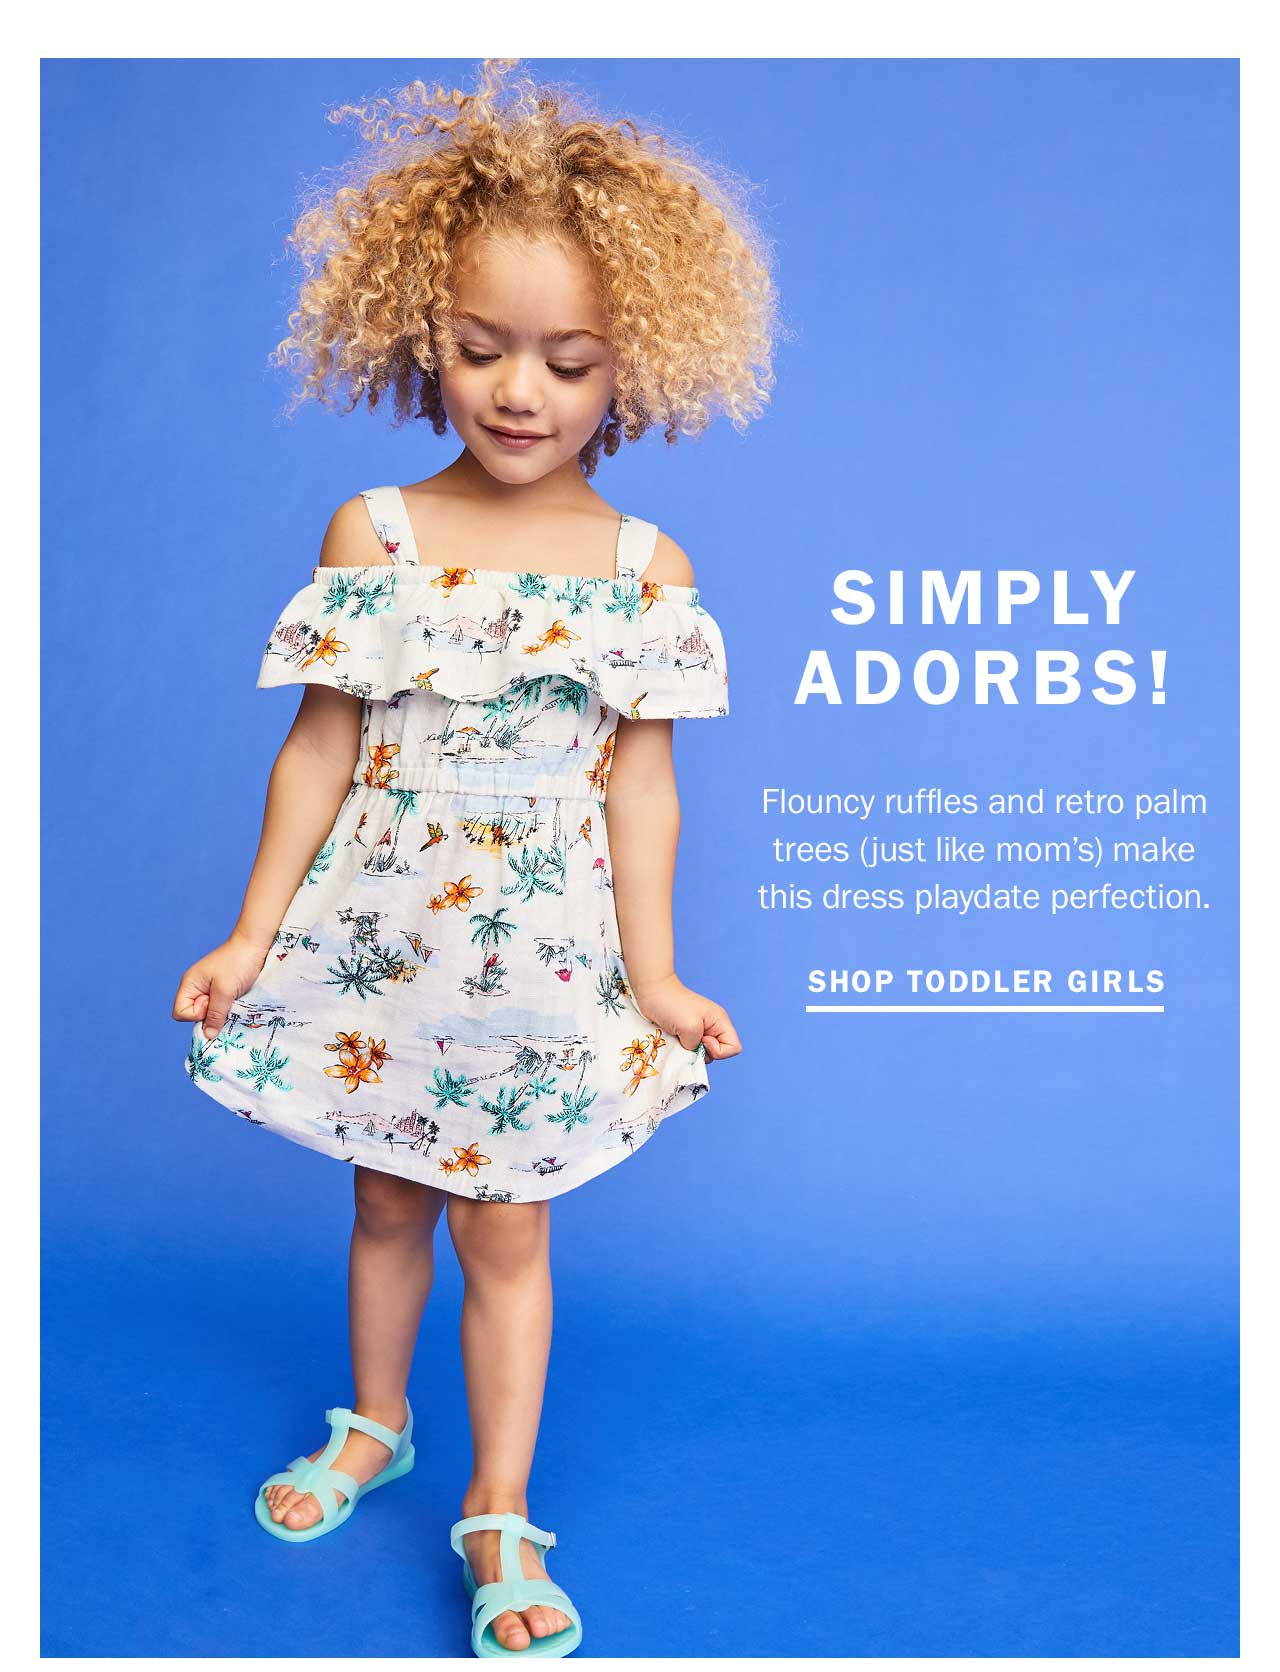 SIMPLY ADORBS! | SHOP TODDLER GIRLS